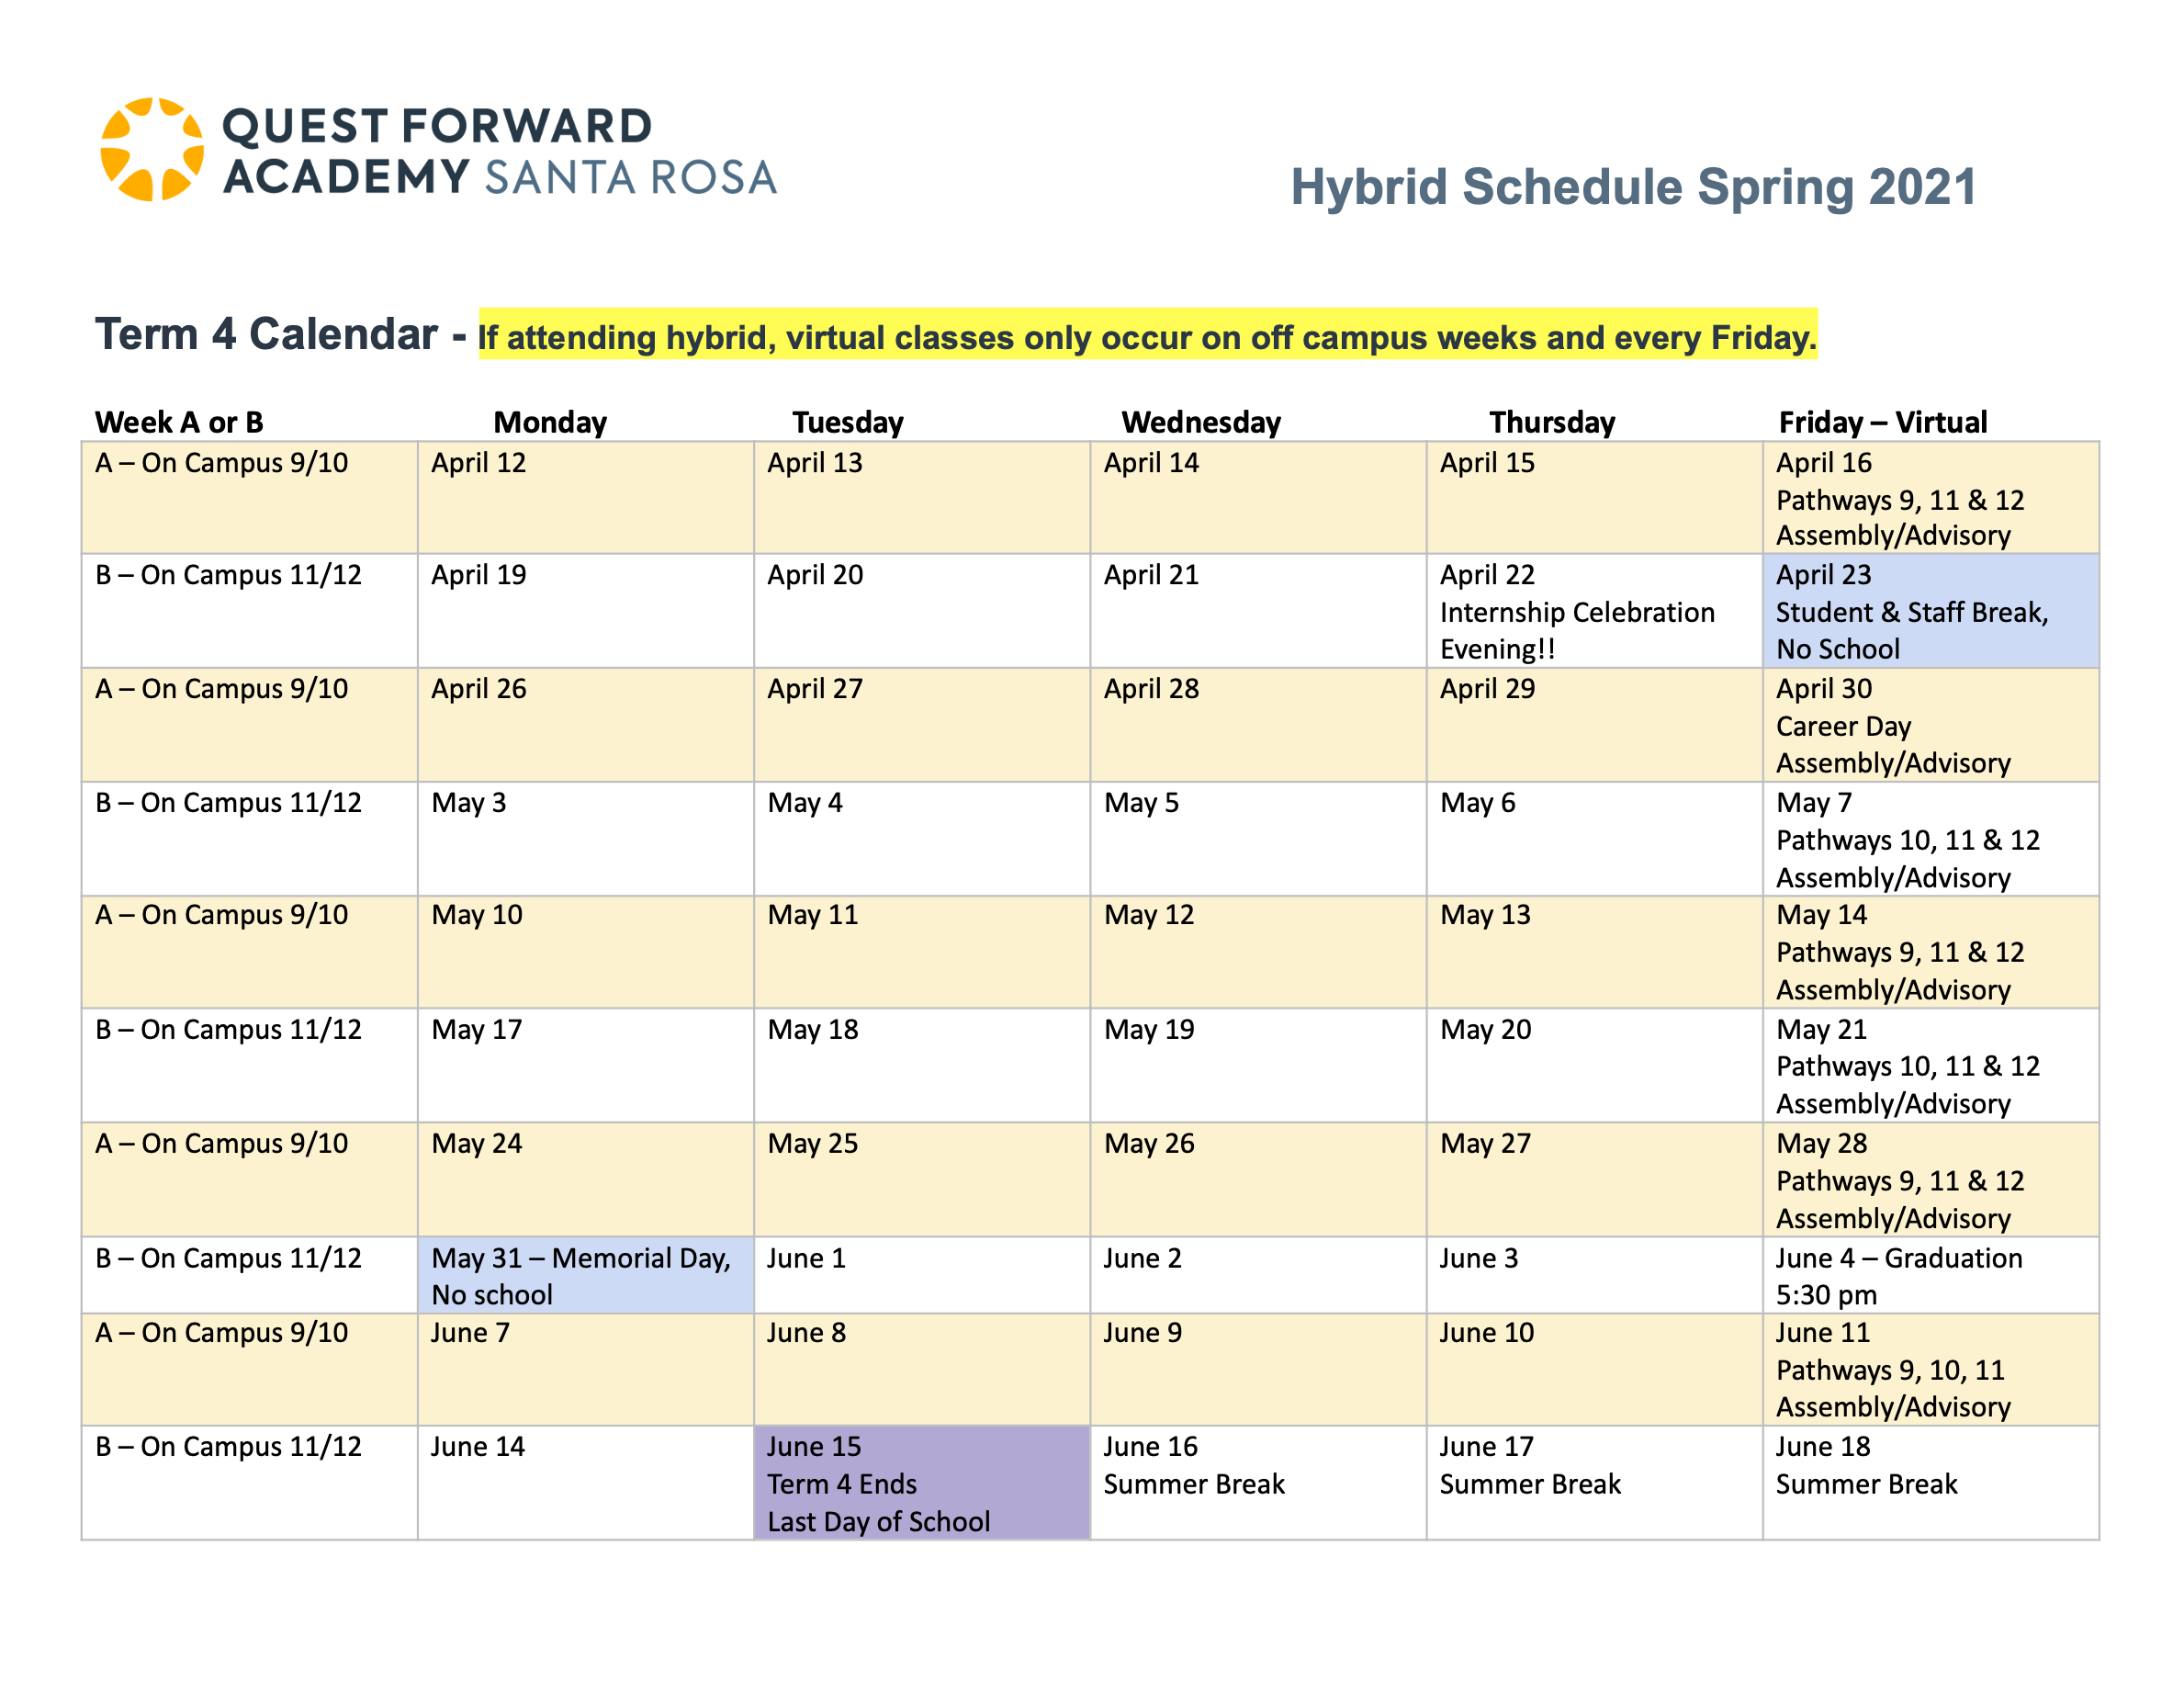 """A table displays the """"A"""" and """"B"""" weeks in the term 4 schedule for Quest Forward Academy Santa Rosa"""